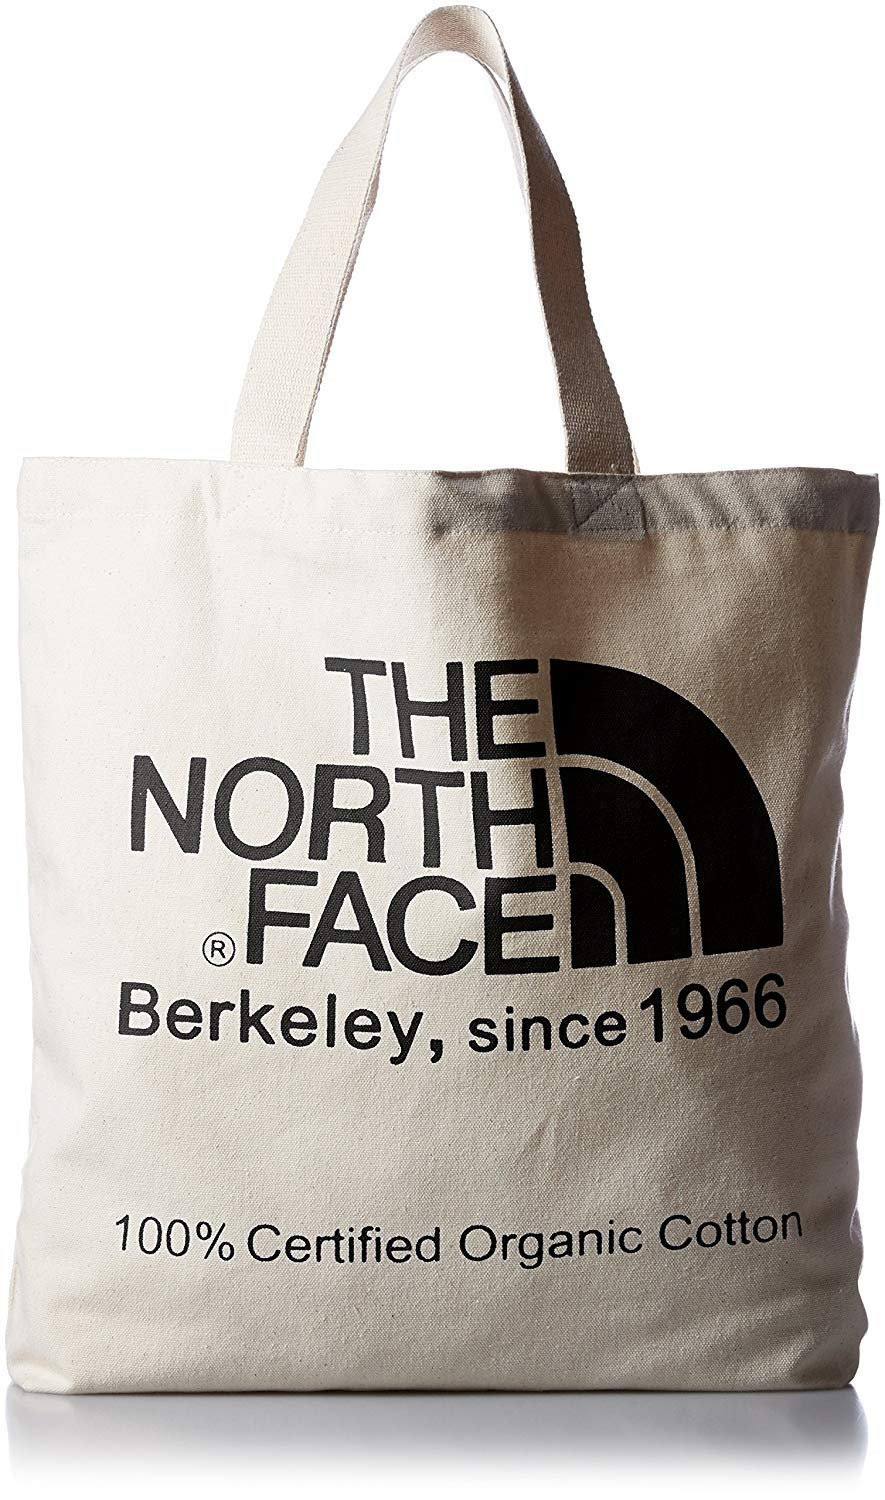 17e3480721 Amazon.com | THE NORTH FACE 100% Organic Cotton Tote Shoulder Bag,  Large-Capacity Anywhere Canvas Bag, Berkeley, since 1966 (Black) | Travel  Totes